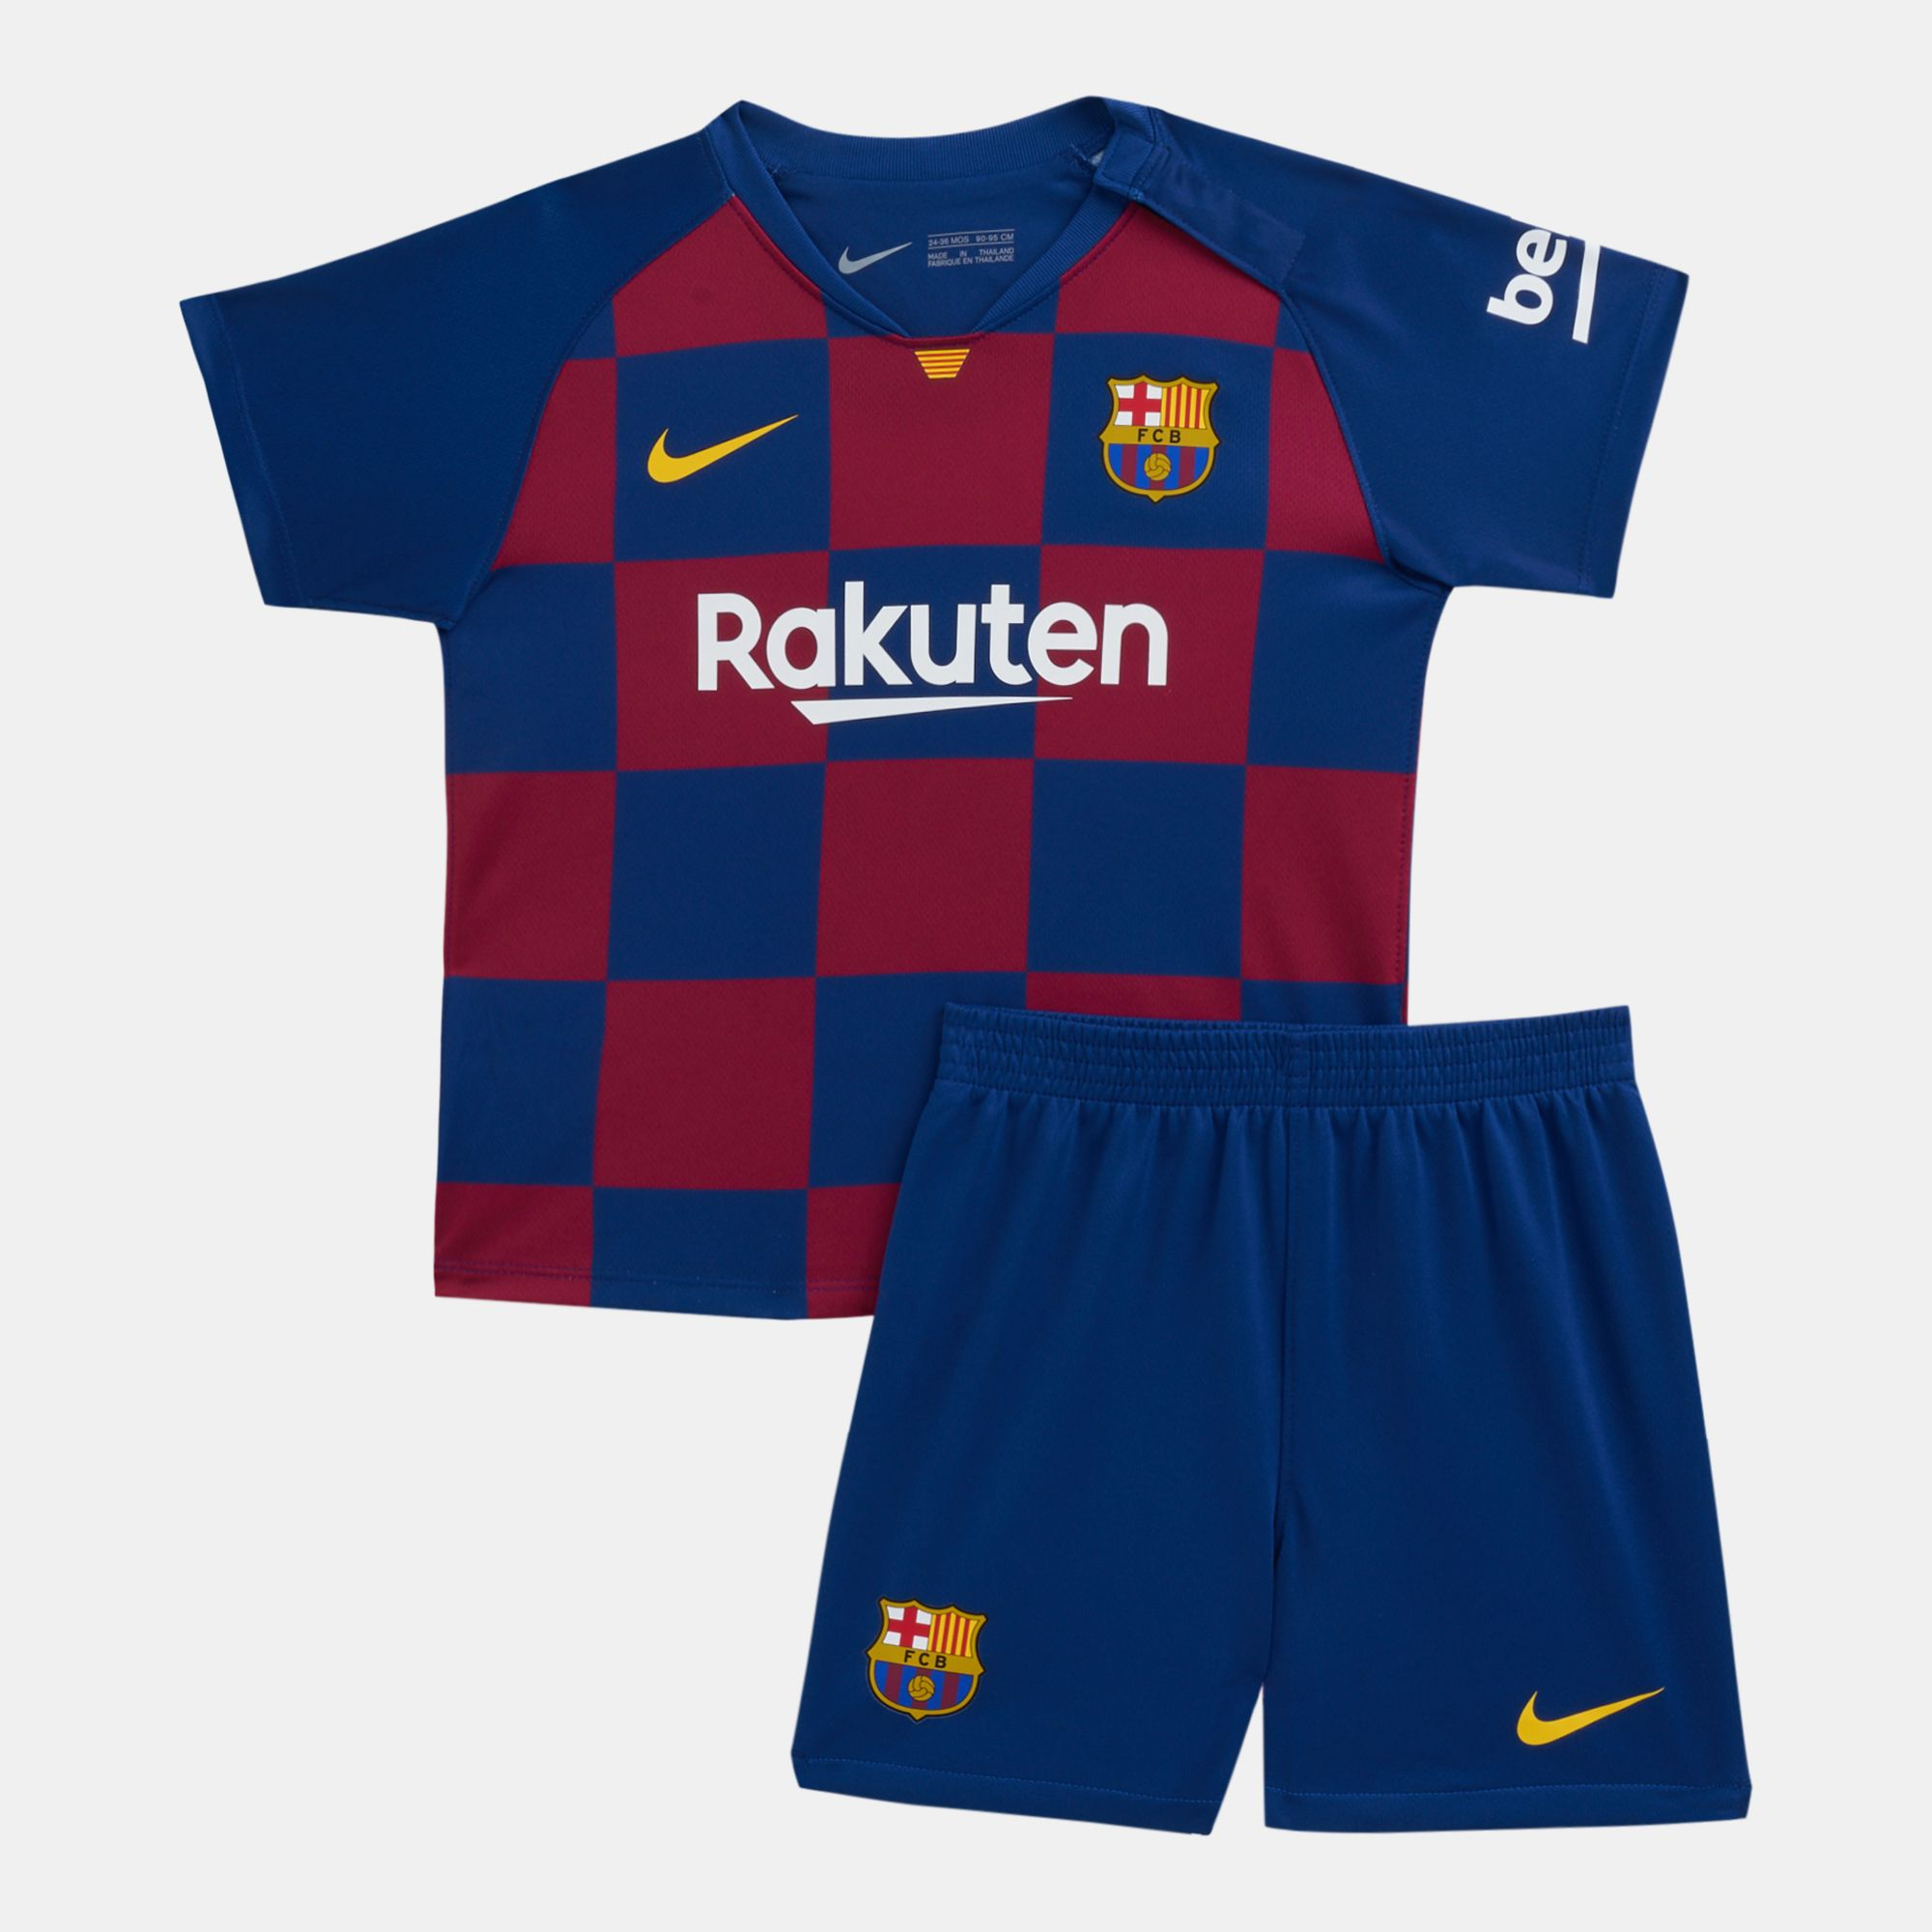 reputable site f2c01 449bc Nike Kids' FC Barcelona Home Kit (Baby and Toddler)